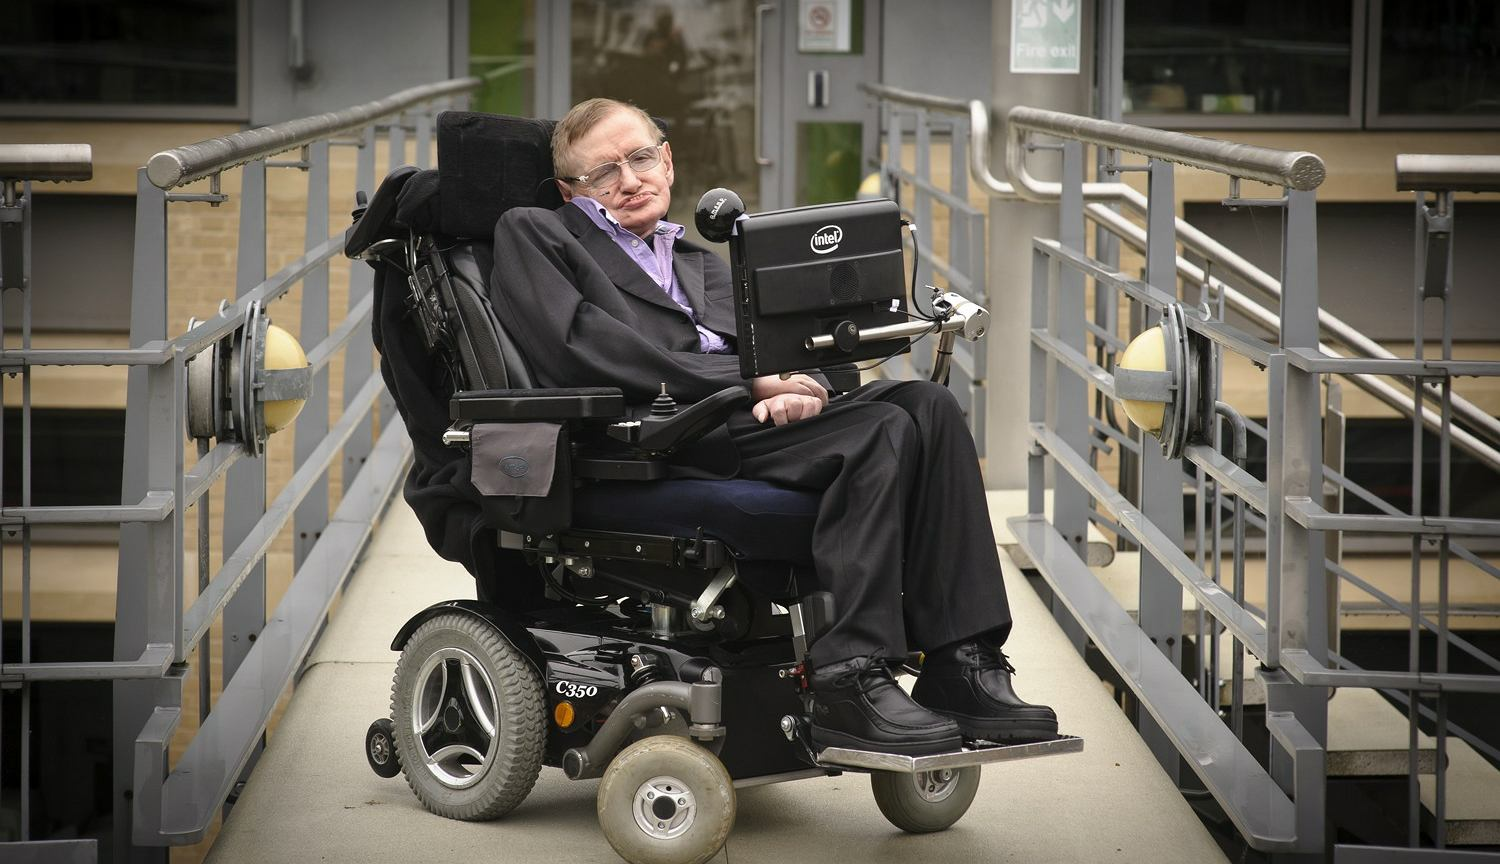 Stephen Hawking on his wheelchair